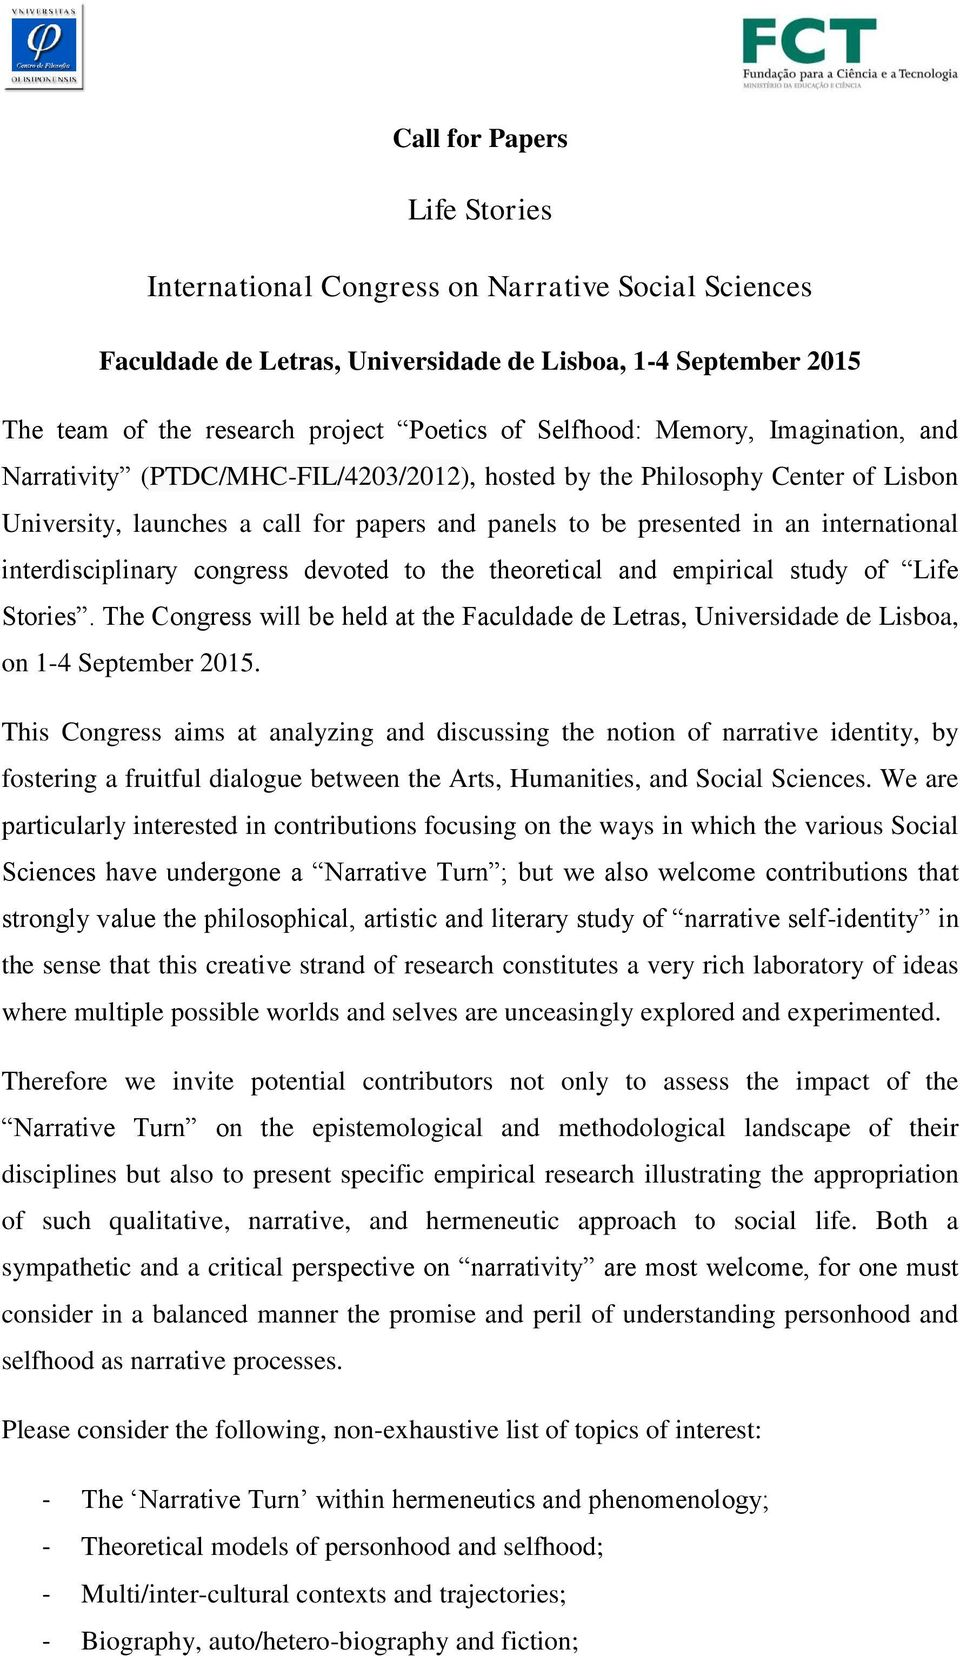 interdisciplinary congress devoted to the theoretical and empirical study of Life Stories. The Congress will be held at the Faculdade de Letras, Universidade de Lisboa, on 1-4 September 2015.